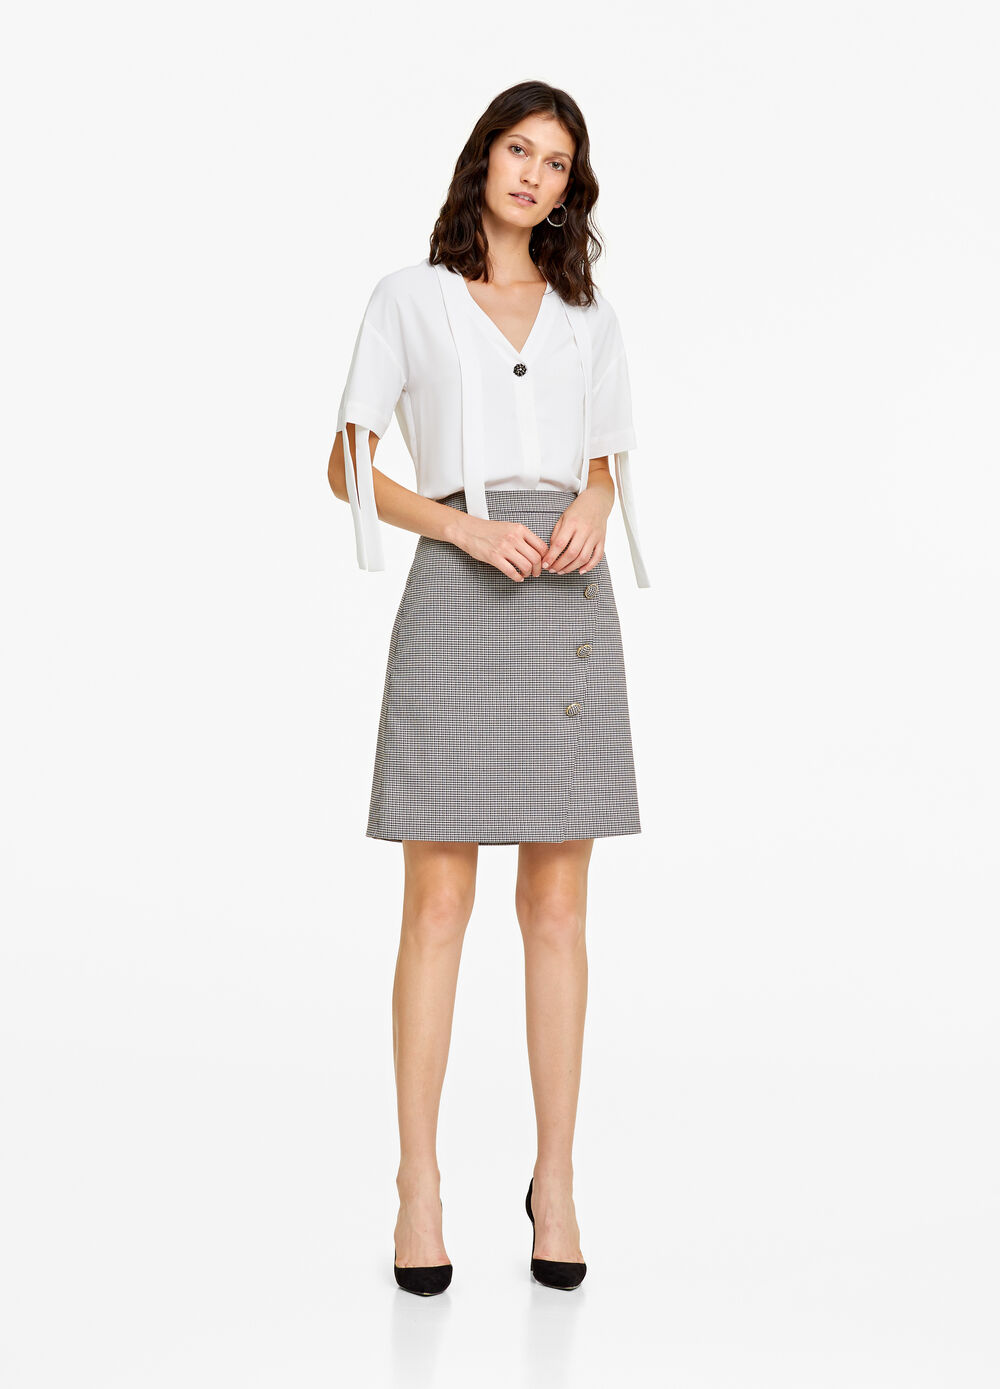 High-waisted skirt with micro-check pattern